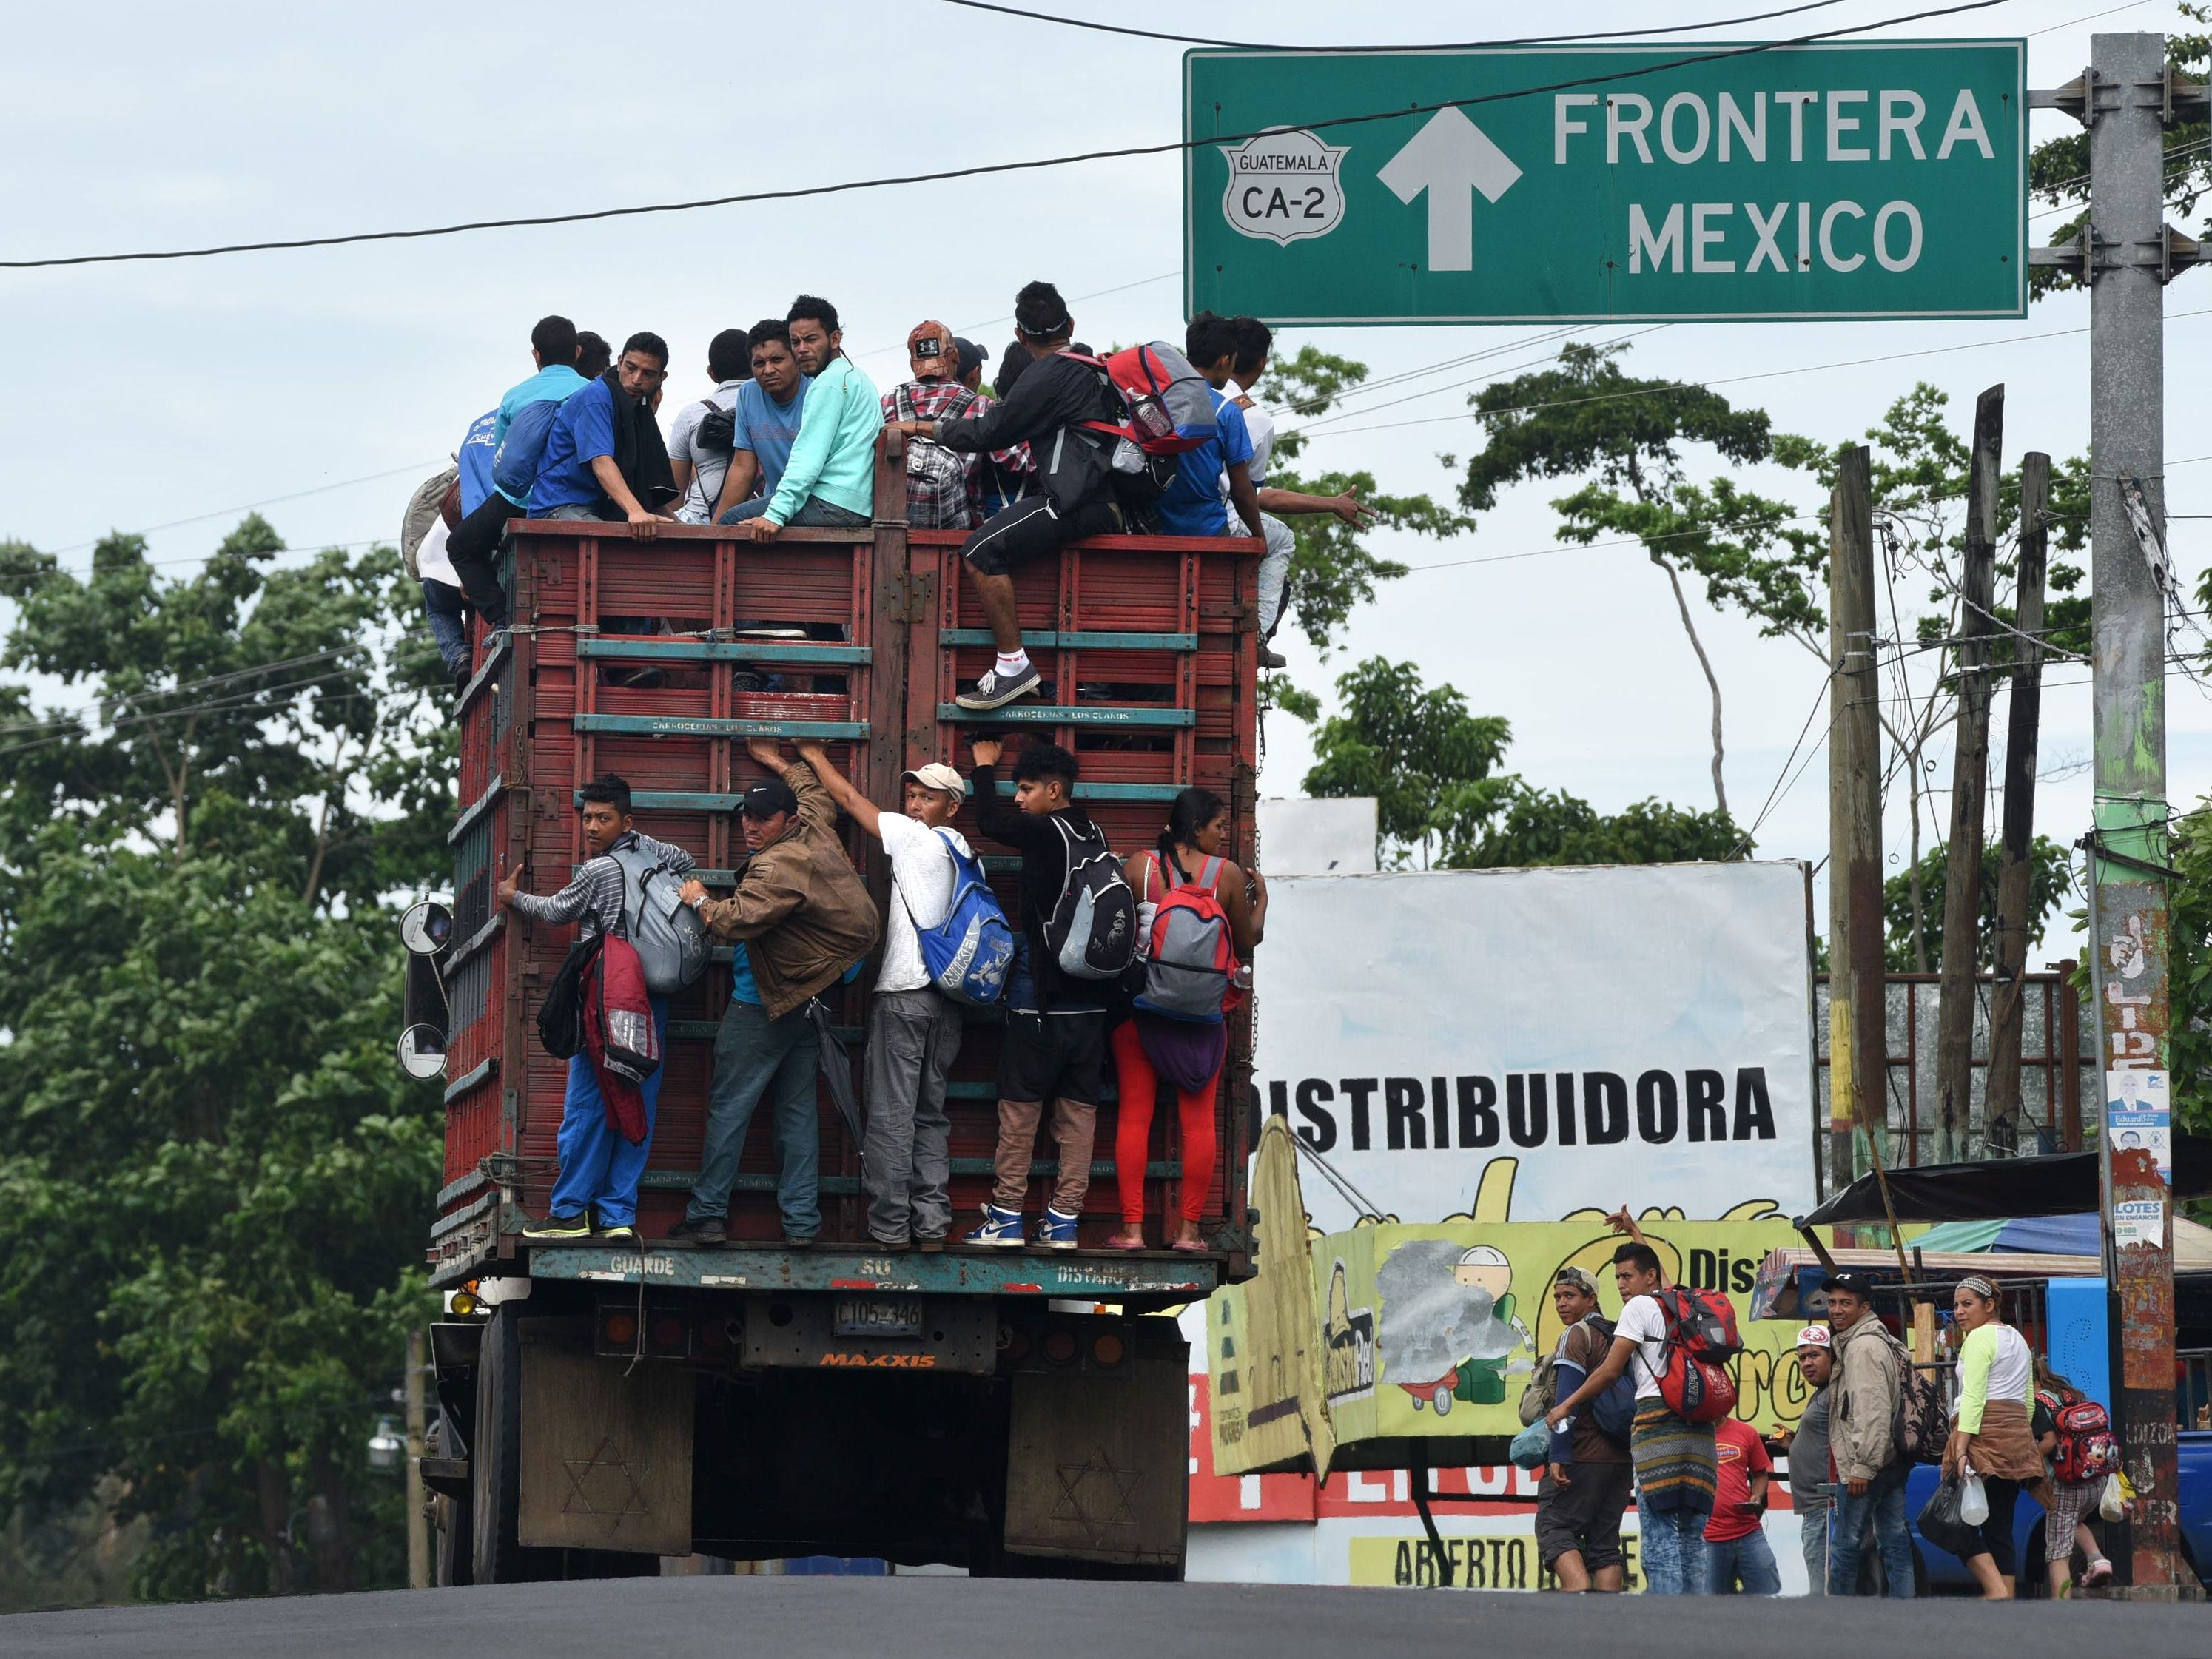 Honduran migrants ride on a truck toward Tecun Uman, Guatemala, on the border with Mexico, to take part in a caravan heading to the U.S., on Oct. 19, 2018. Honduran migrants who have made their way through Central America were gathering at Guatemala's northern border with Mexico on Friday, despite President Donald Trump's threat to deploy the military to stop them from entering the United States.